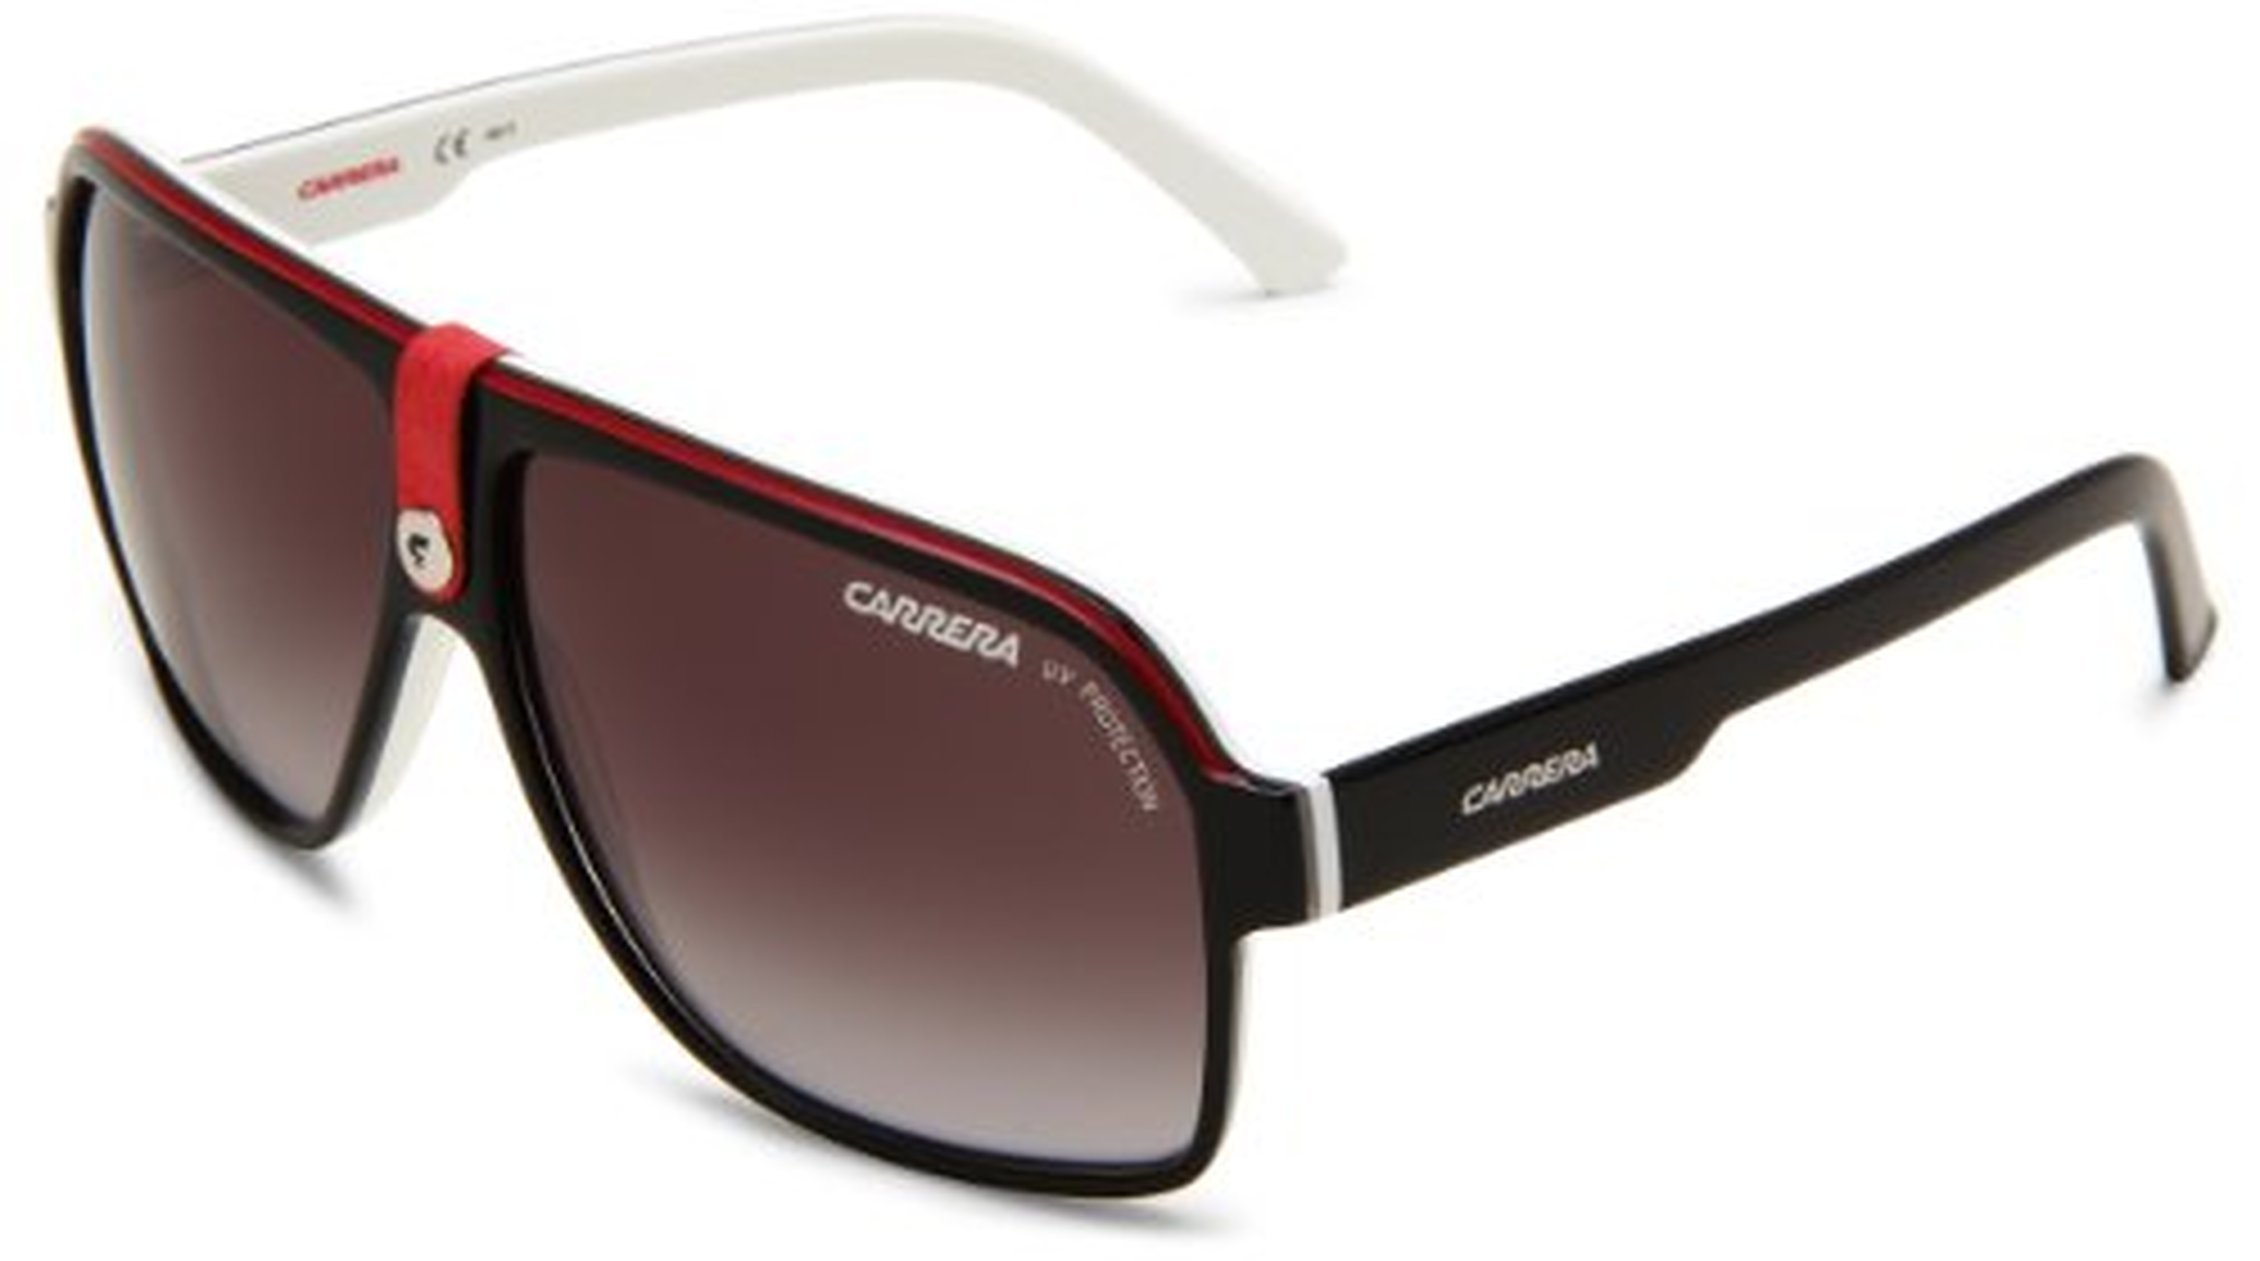 Carrera 33/S Sunglasses Black Crystal White / Gray Gradient & Cleaning Kit Bundle